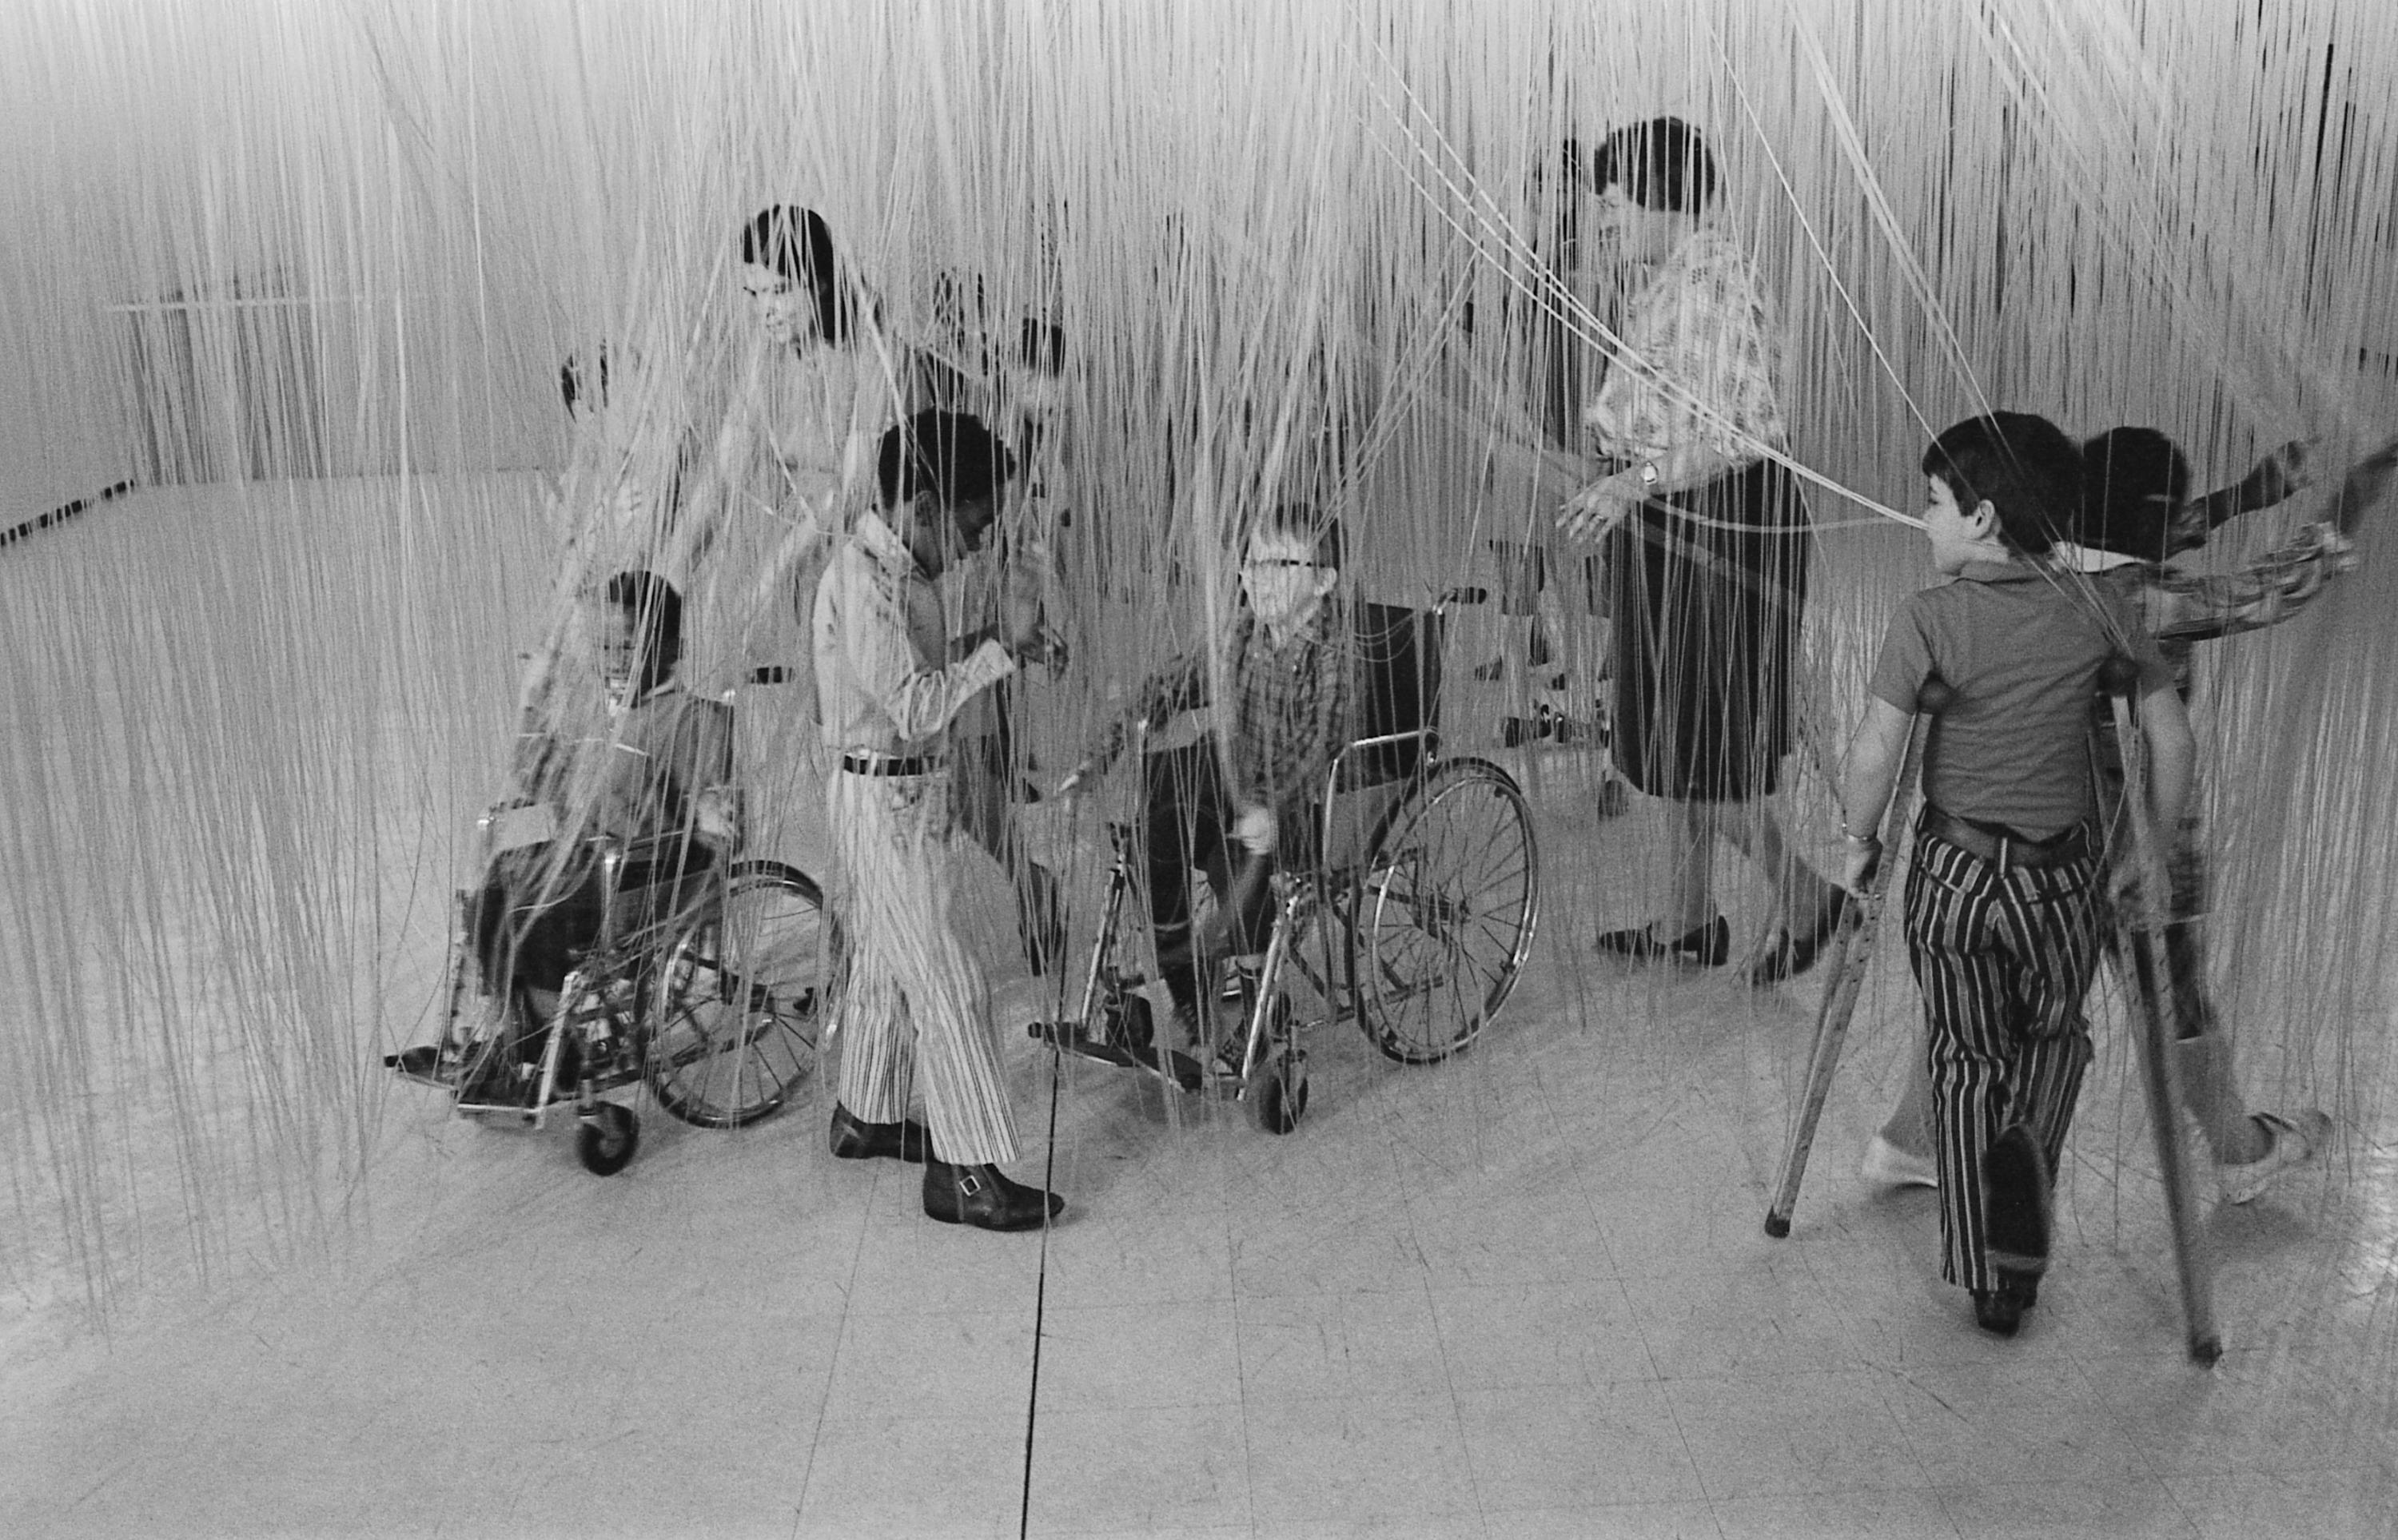 A group of children, some pushed in wheelchairs or using crutches, touches strands of an artwork hanging from the ceiling.